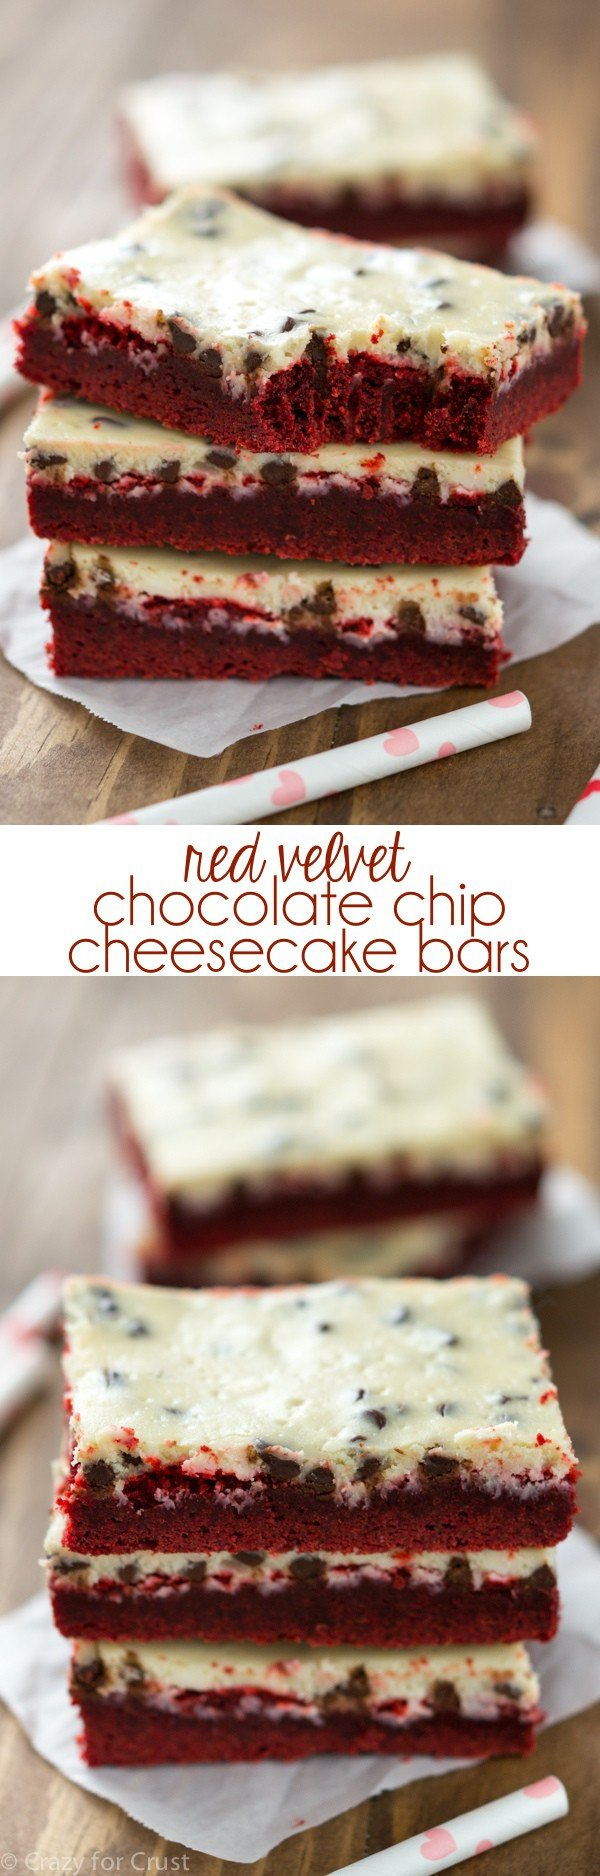 Red Velvet Chocolate Chip Cheesecake Bars